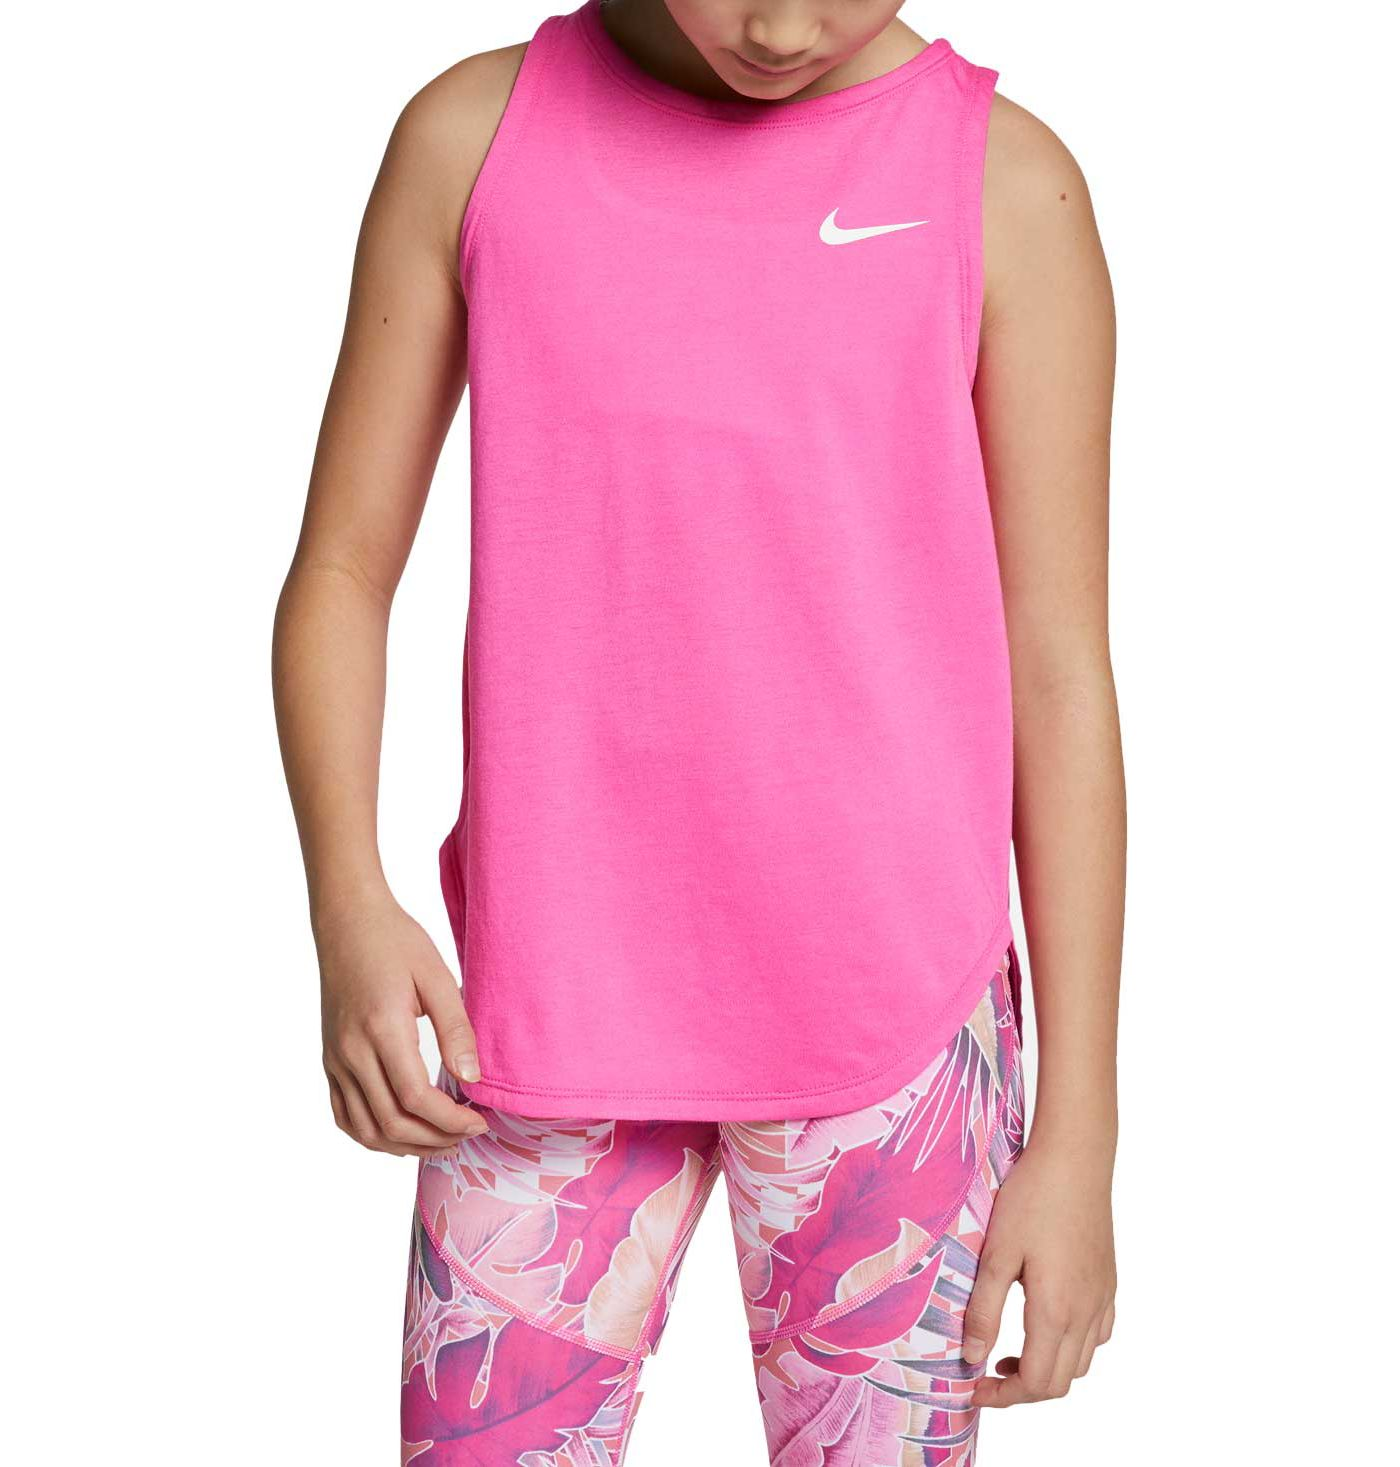 Nike Girls' Dri-FIT Studio Tank Top